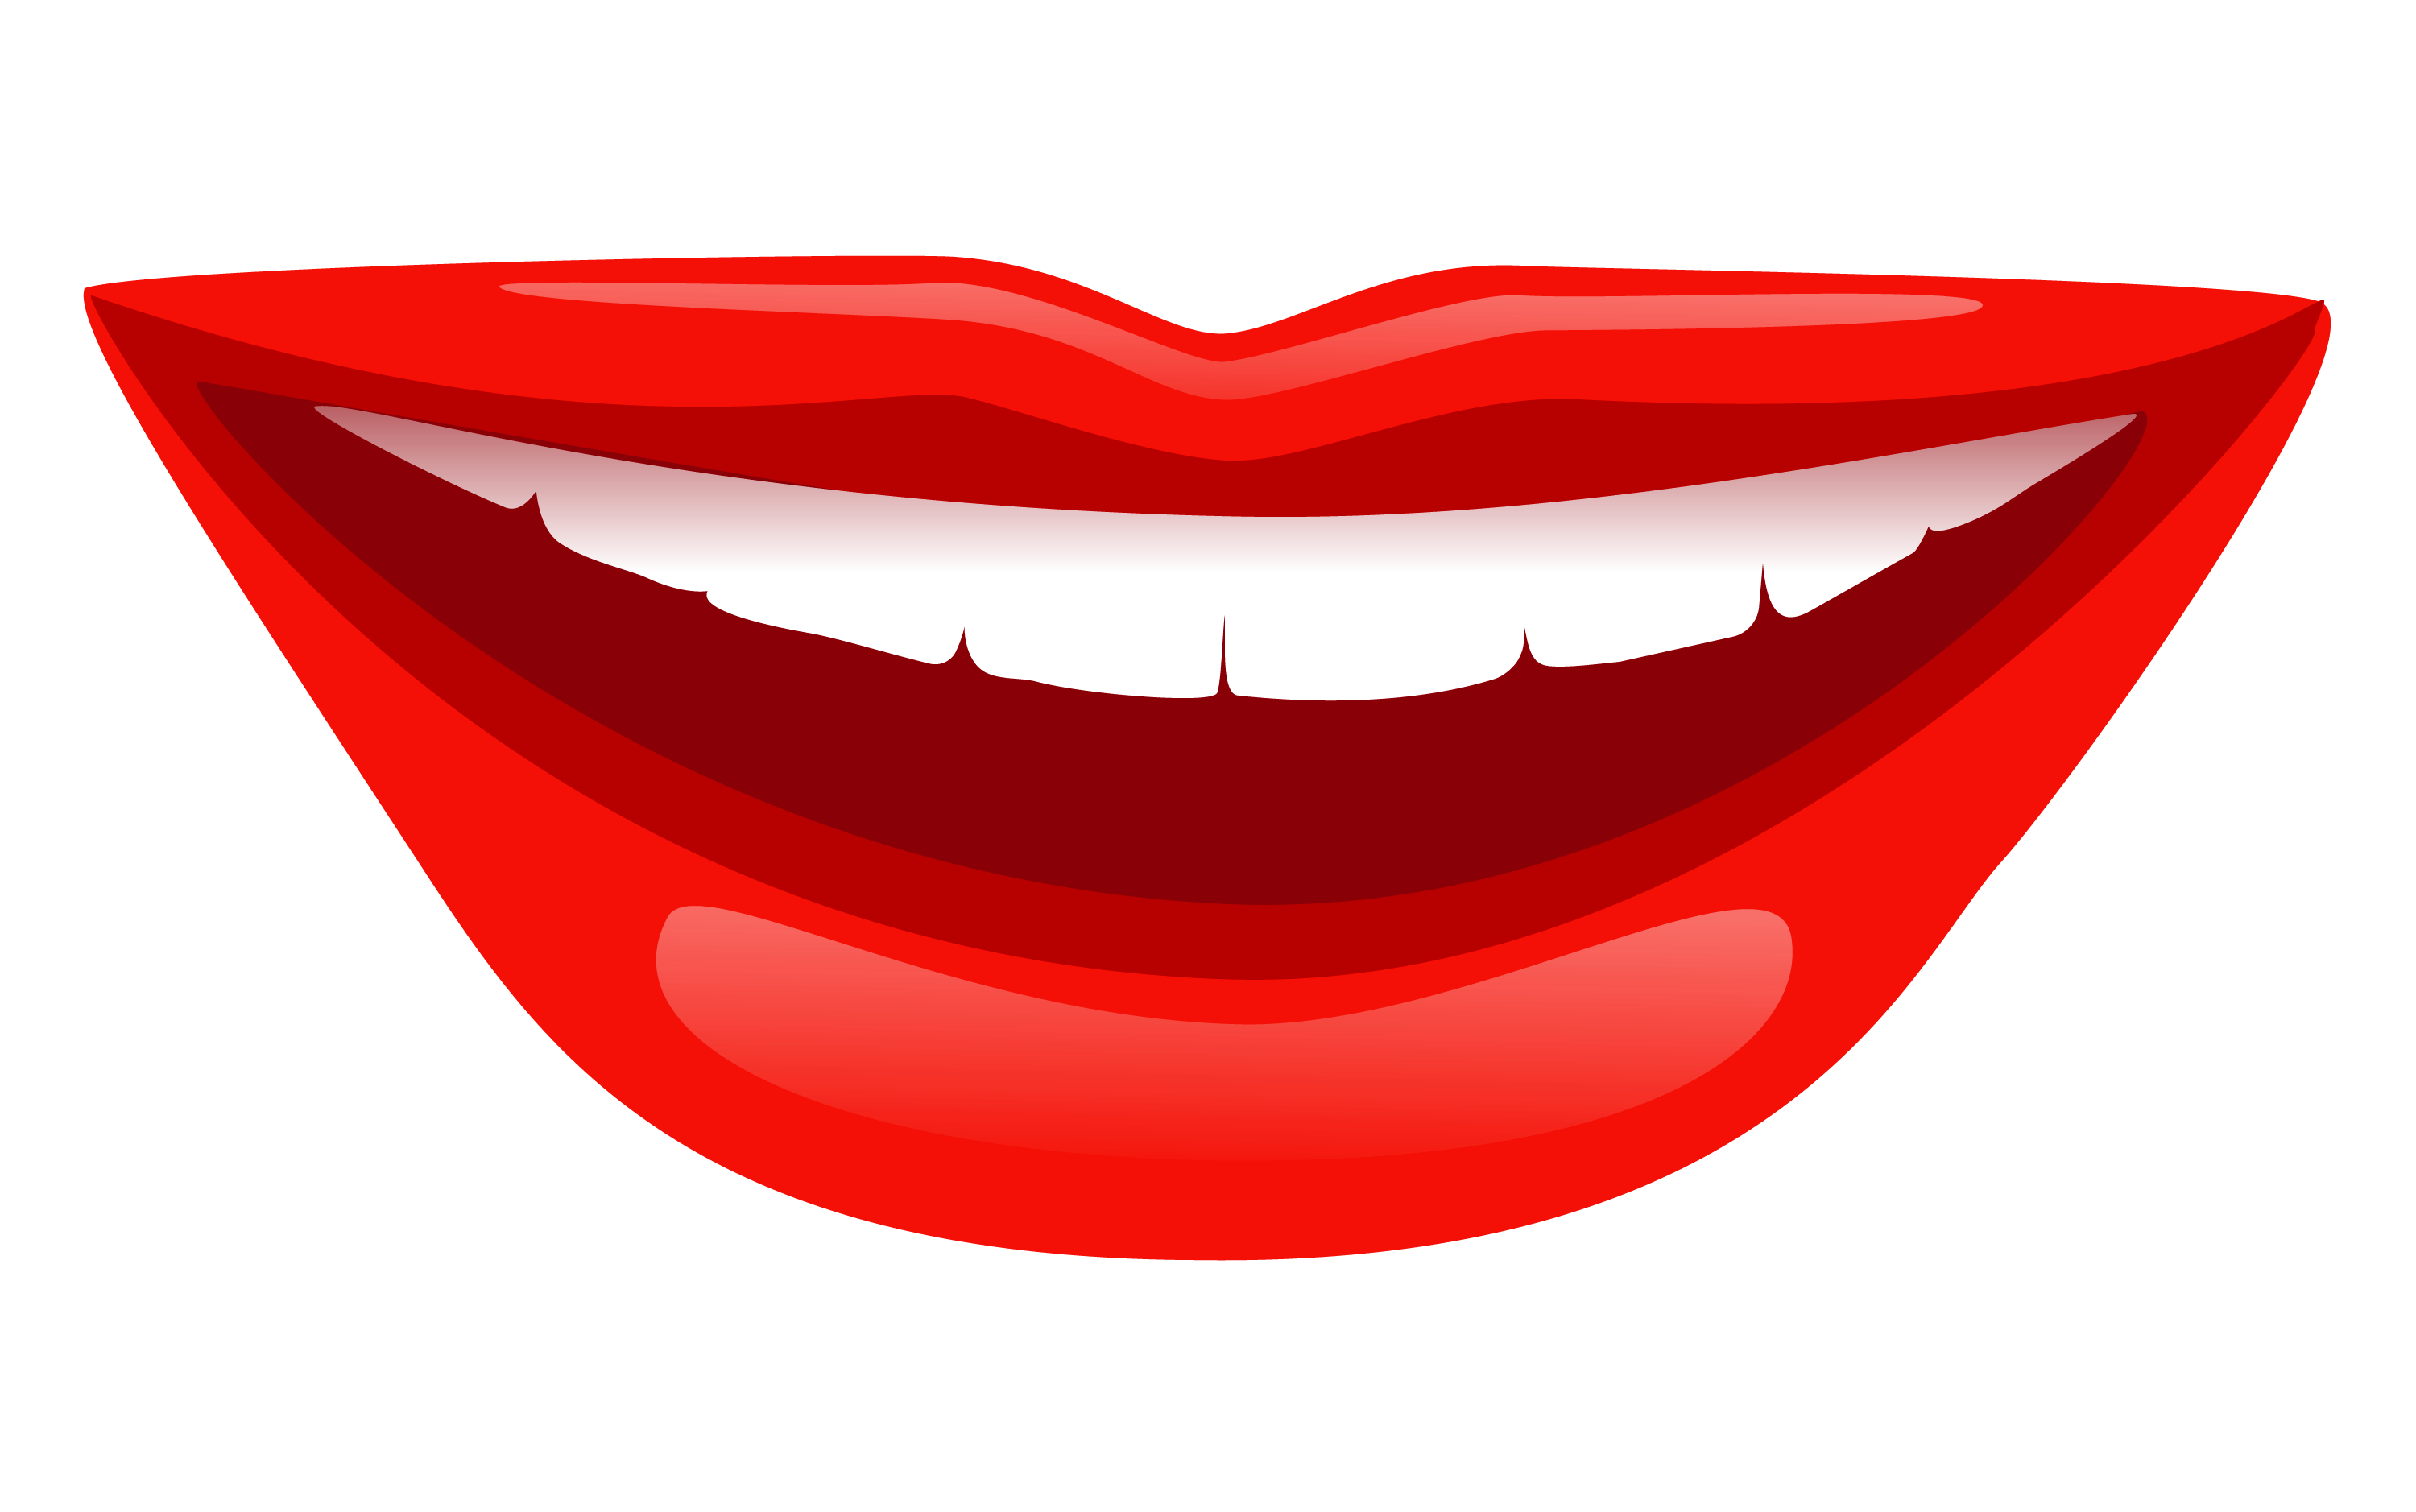 Cartoon smile png. Smiling lips hd transparent